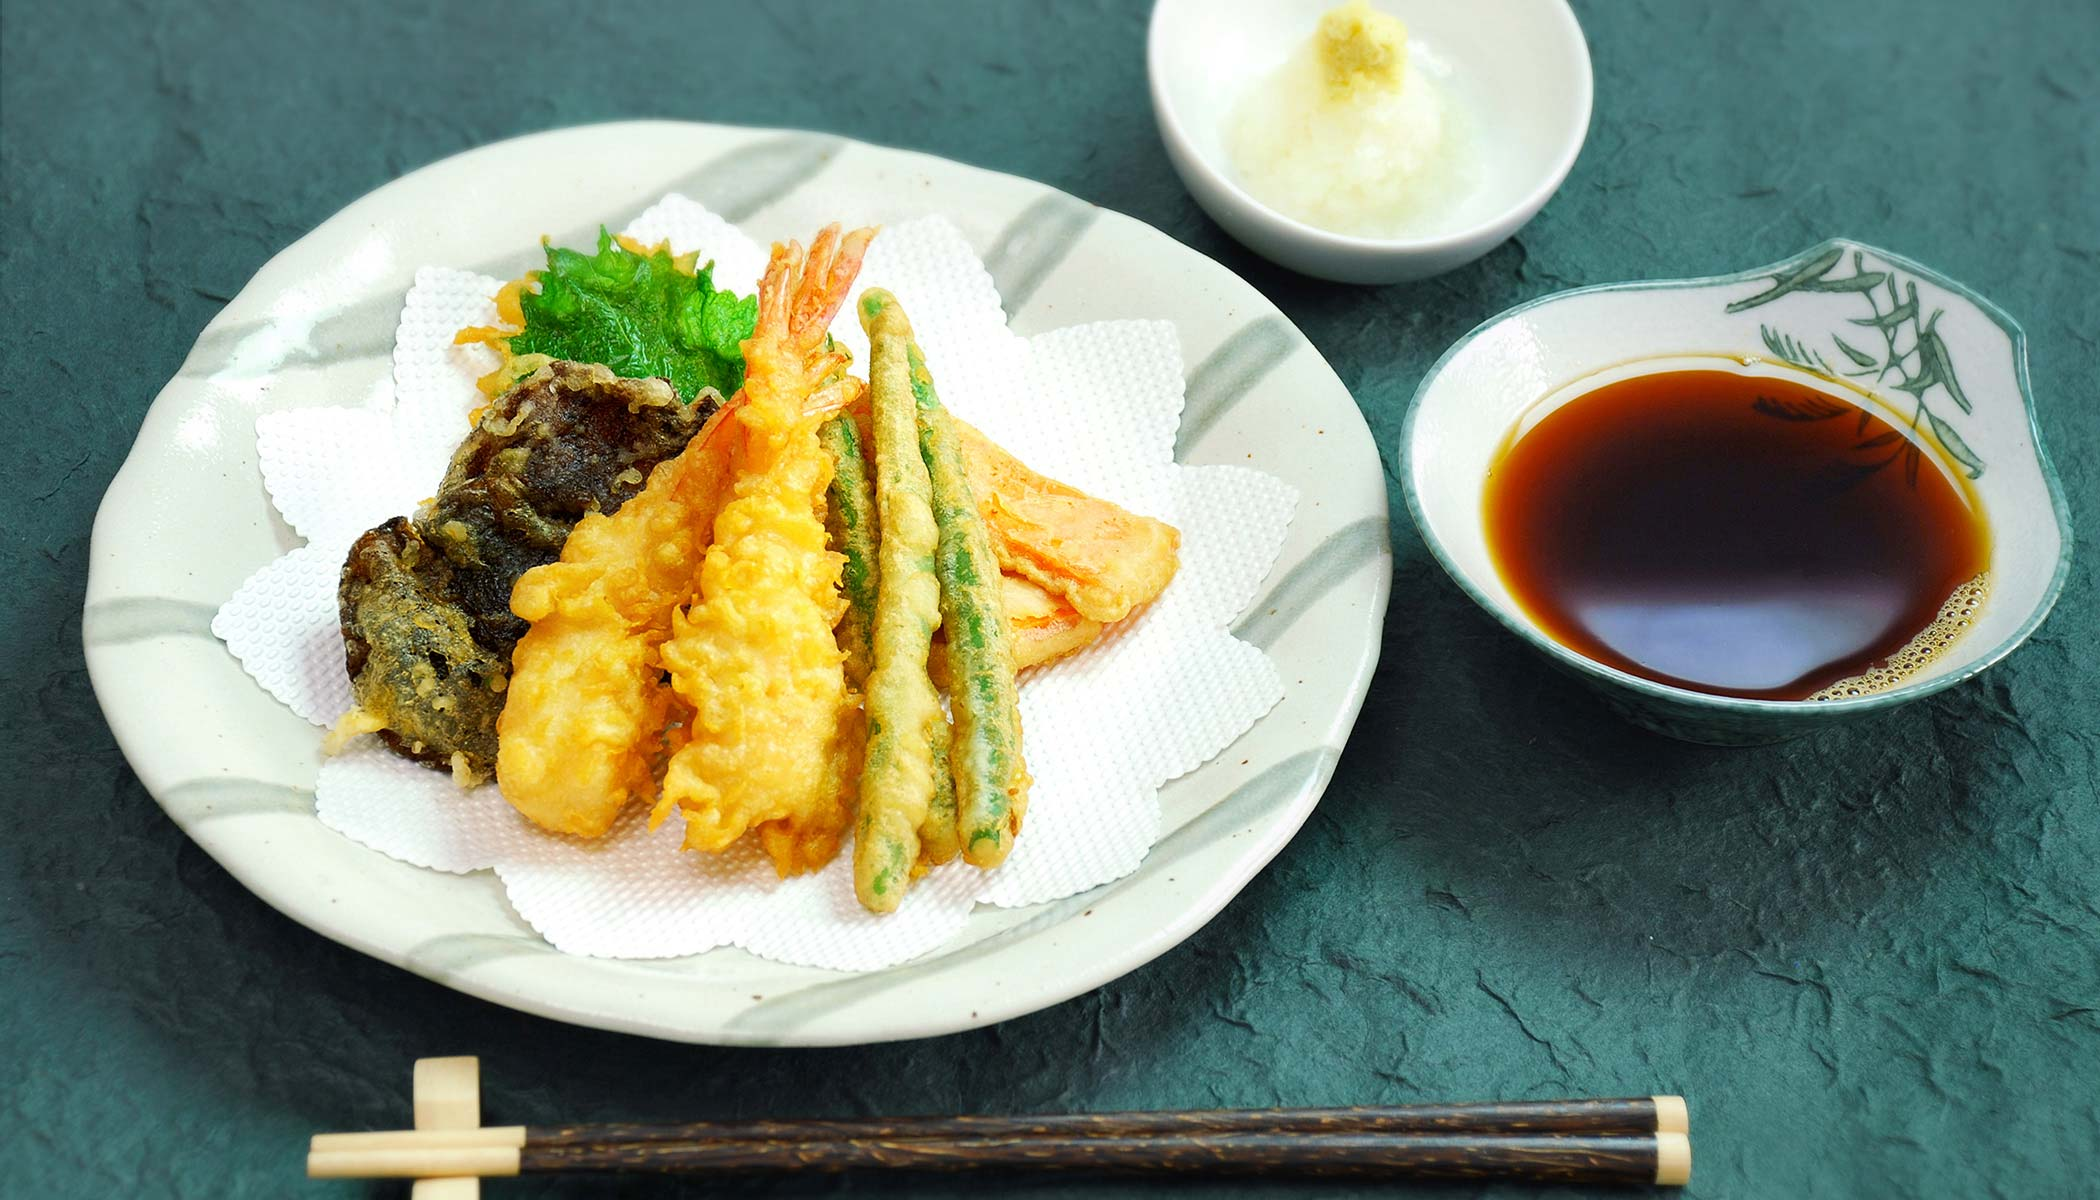 Tempura Battered And Deep Fried Vegetable And Seafood Zojirushi Com